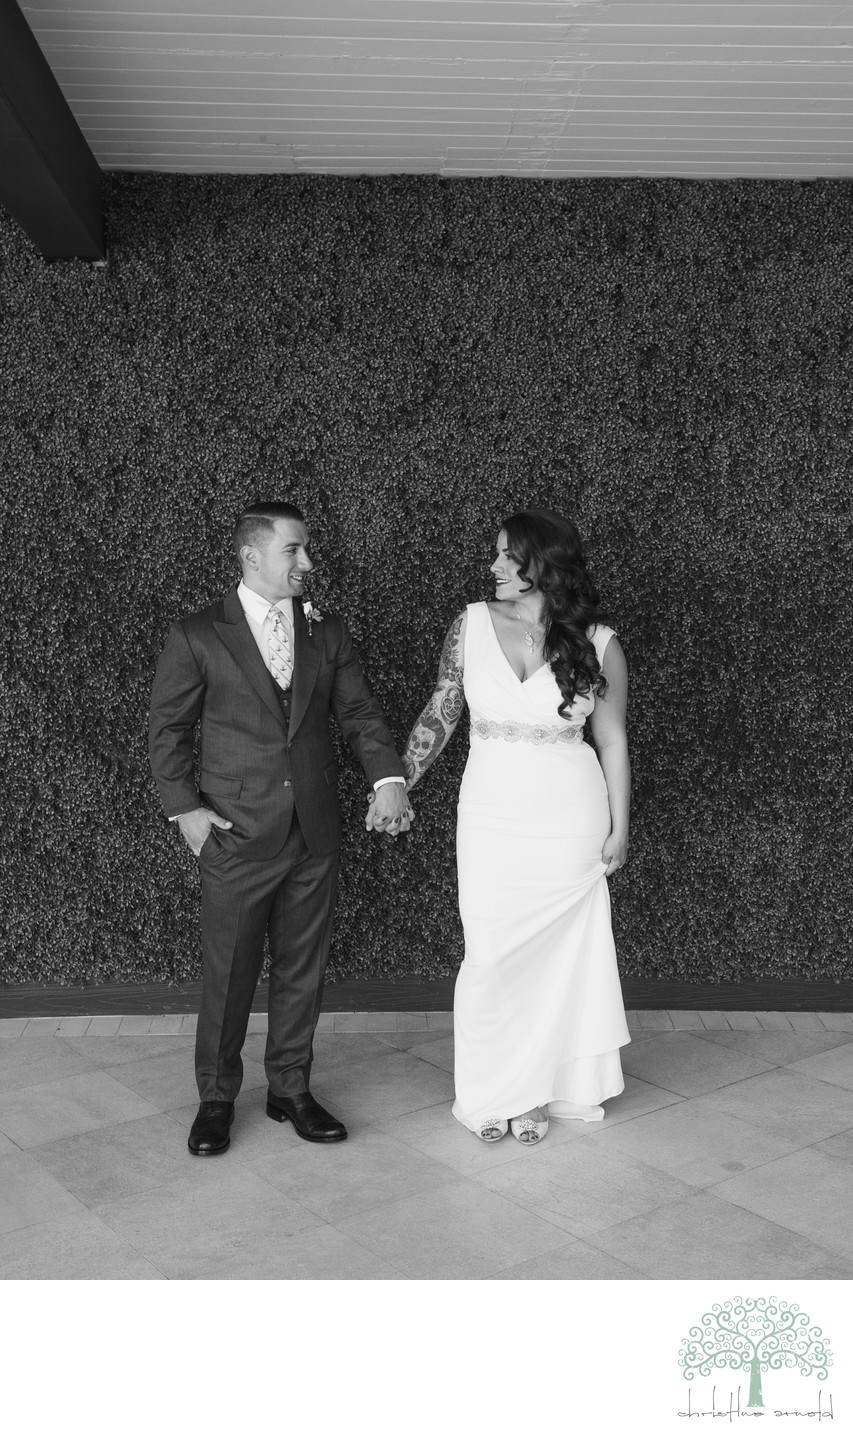 Bride and Groom portrait at Riviera Hotel, Palm Springs